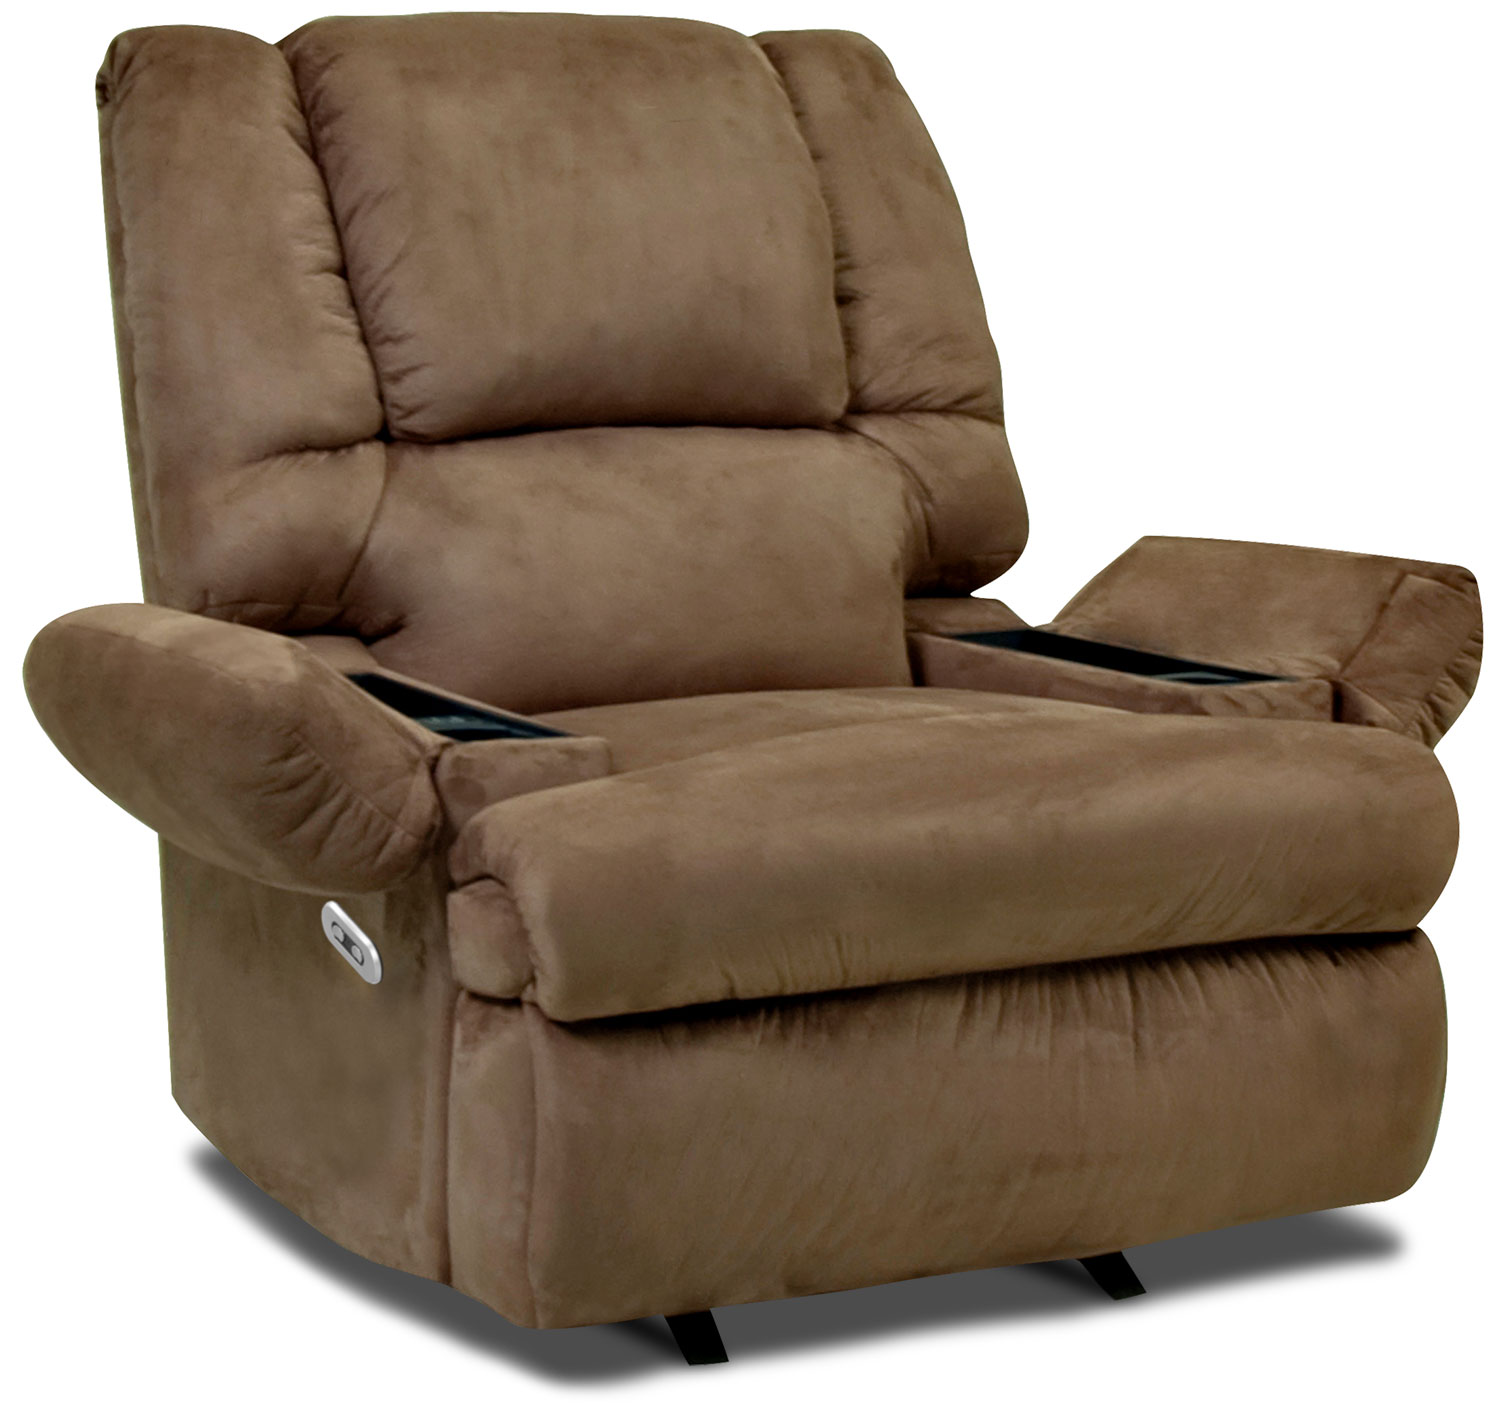 Living Room Furniture - Designed2B 5598 Padded Suede Power Recliner with Massage and Storage - Mocha